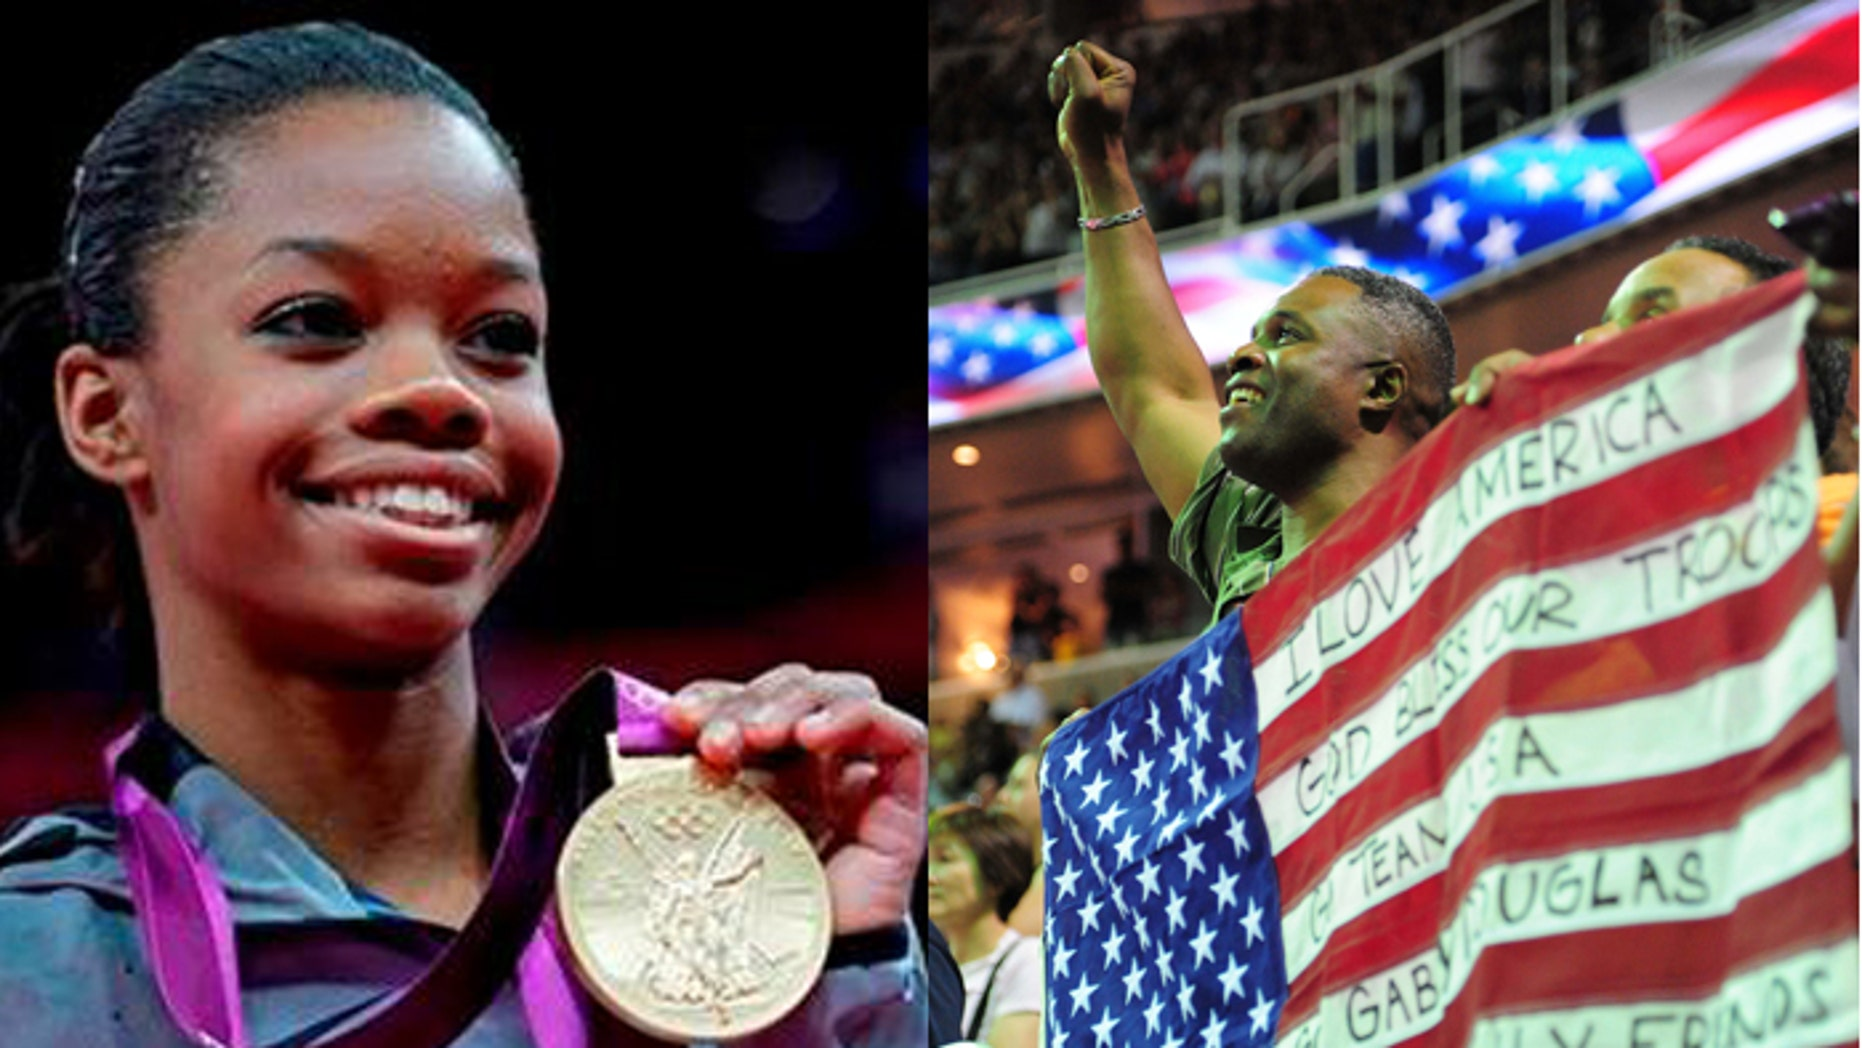 When Gabby Douglas won Olympic gold, her father (r.) couldn't be there to see it in person. But Air Force Staff Sgt. Timothy Douglas watched her  qualify for the U.S. team back in June. (AP, US Presswire)